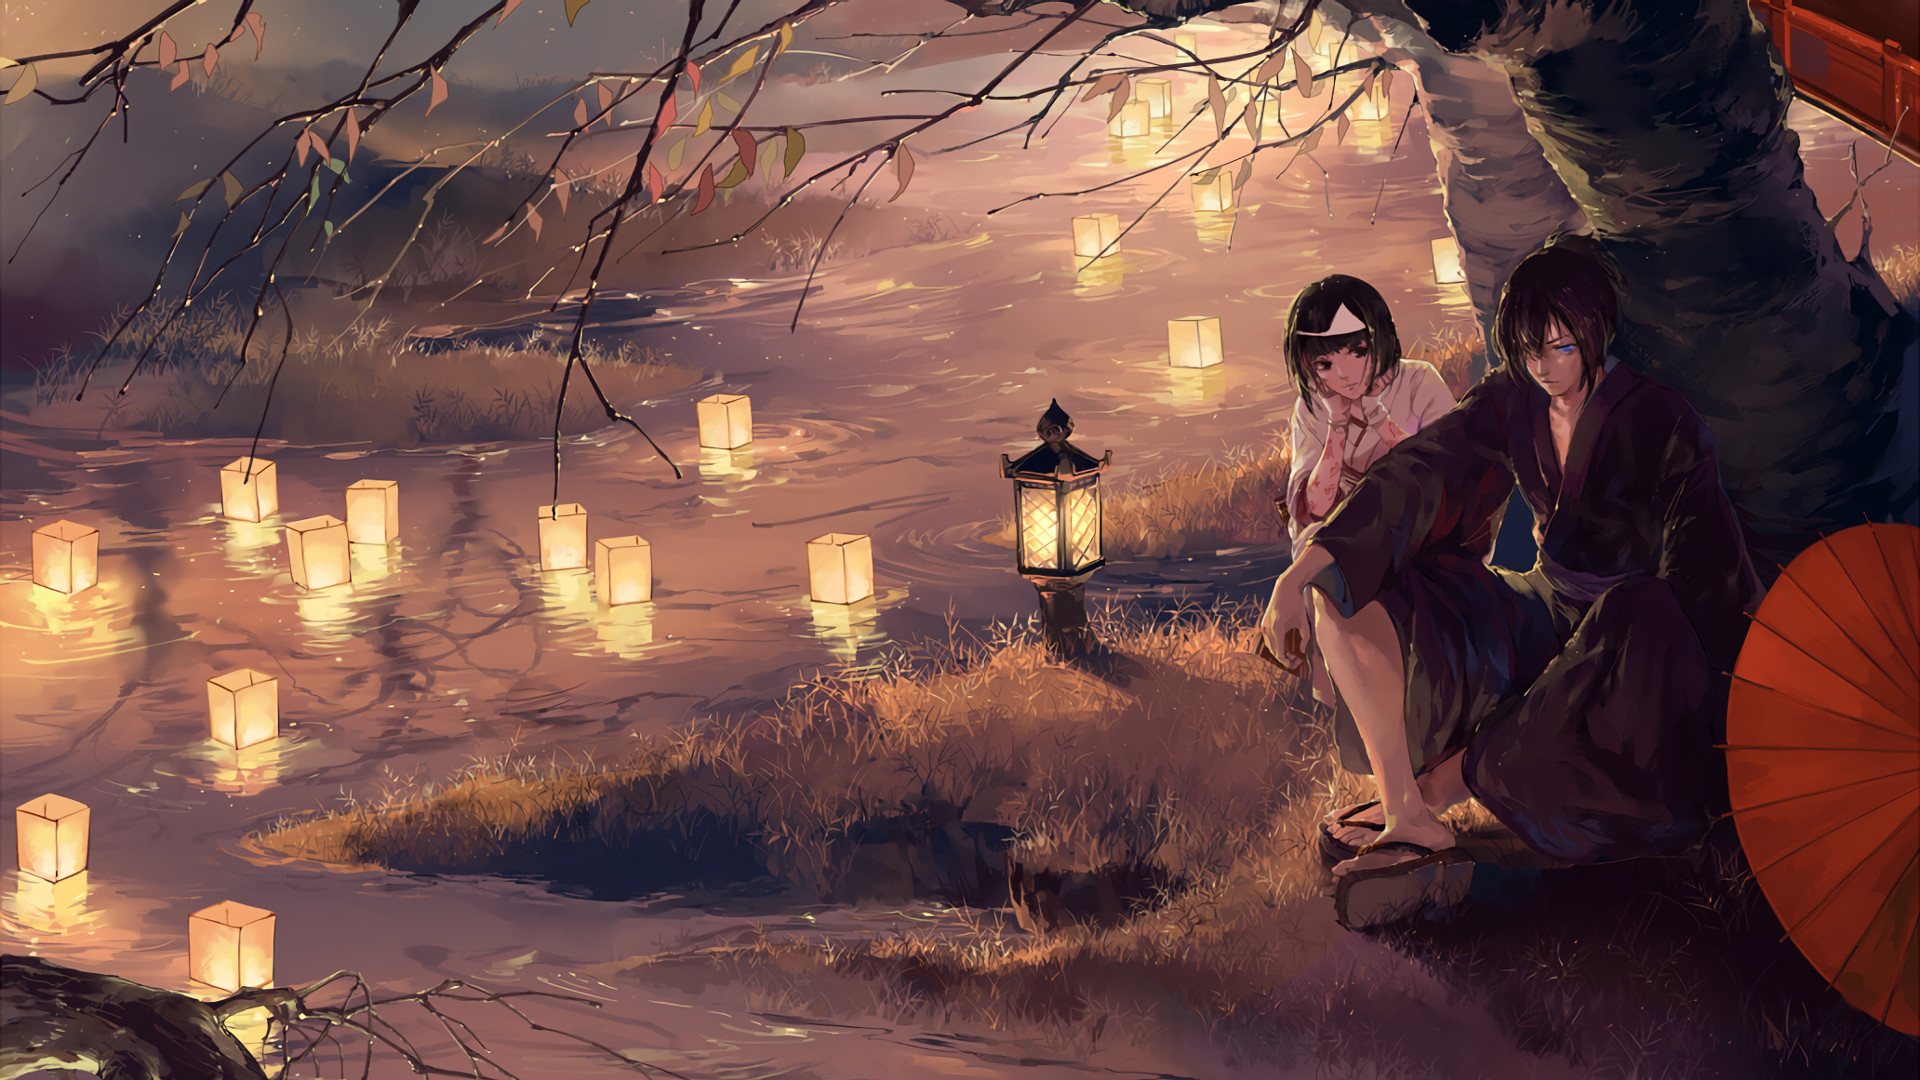 /w/ – Anime/Wallpapers » Thread #1984701